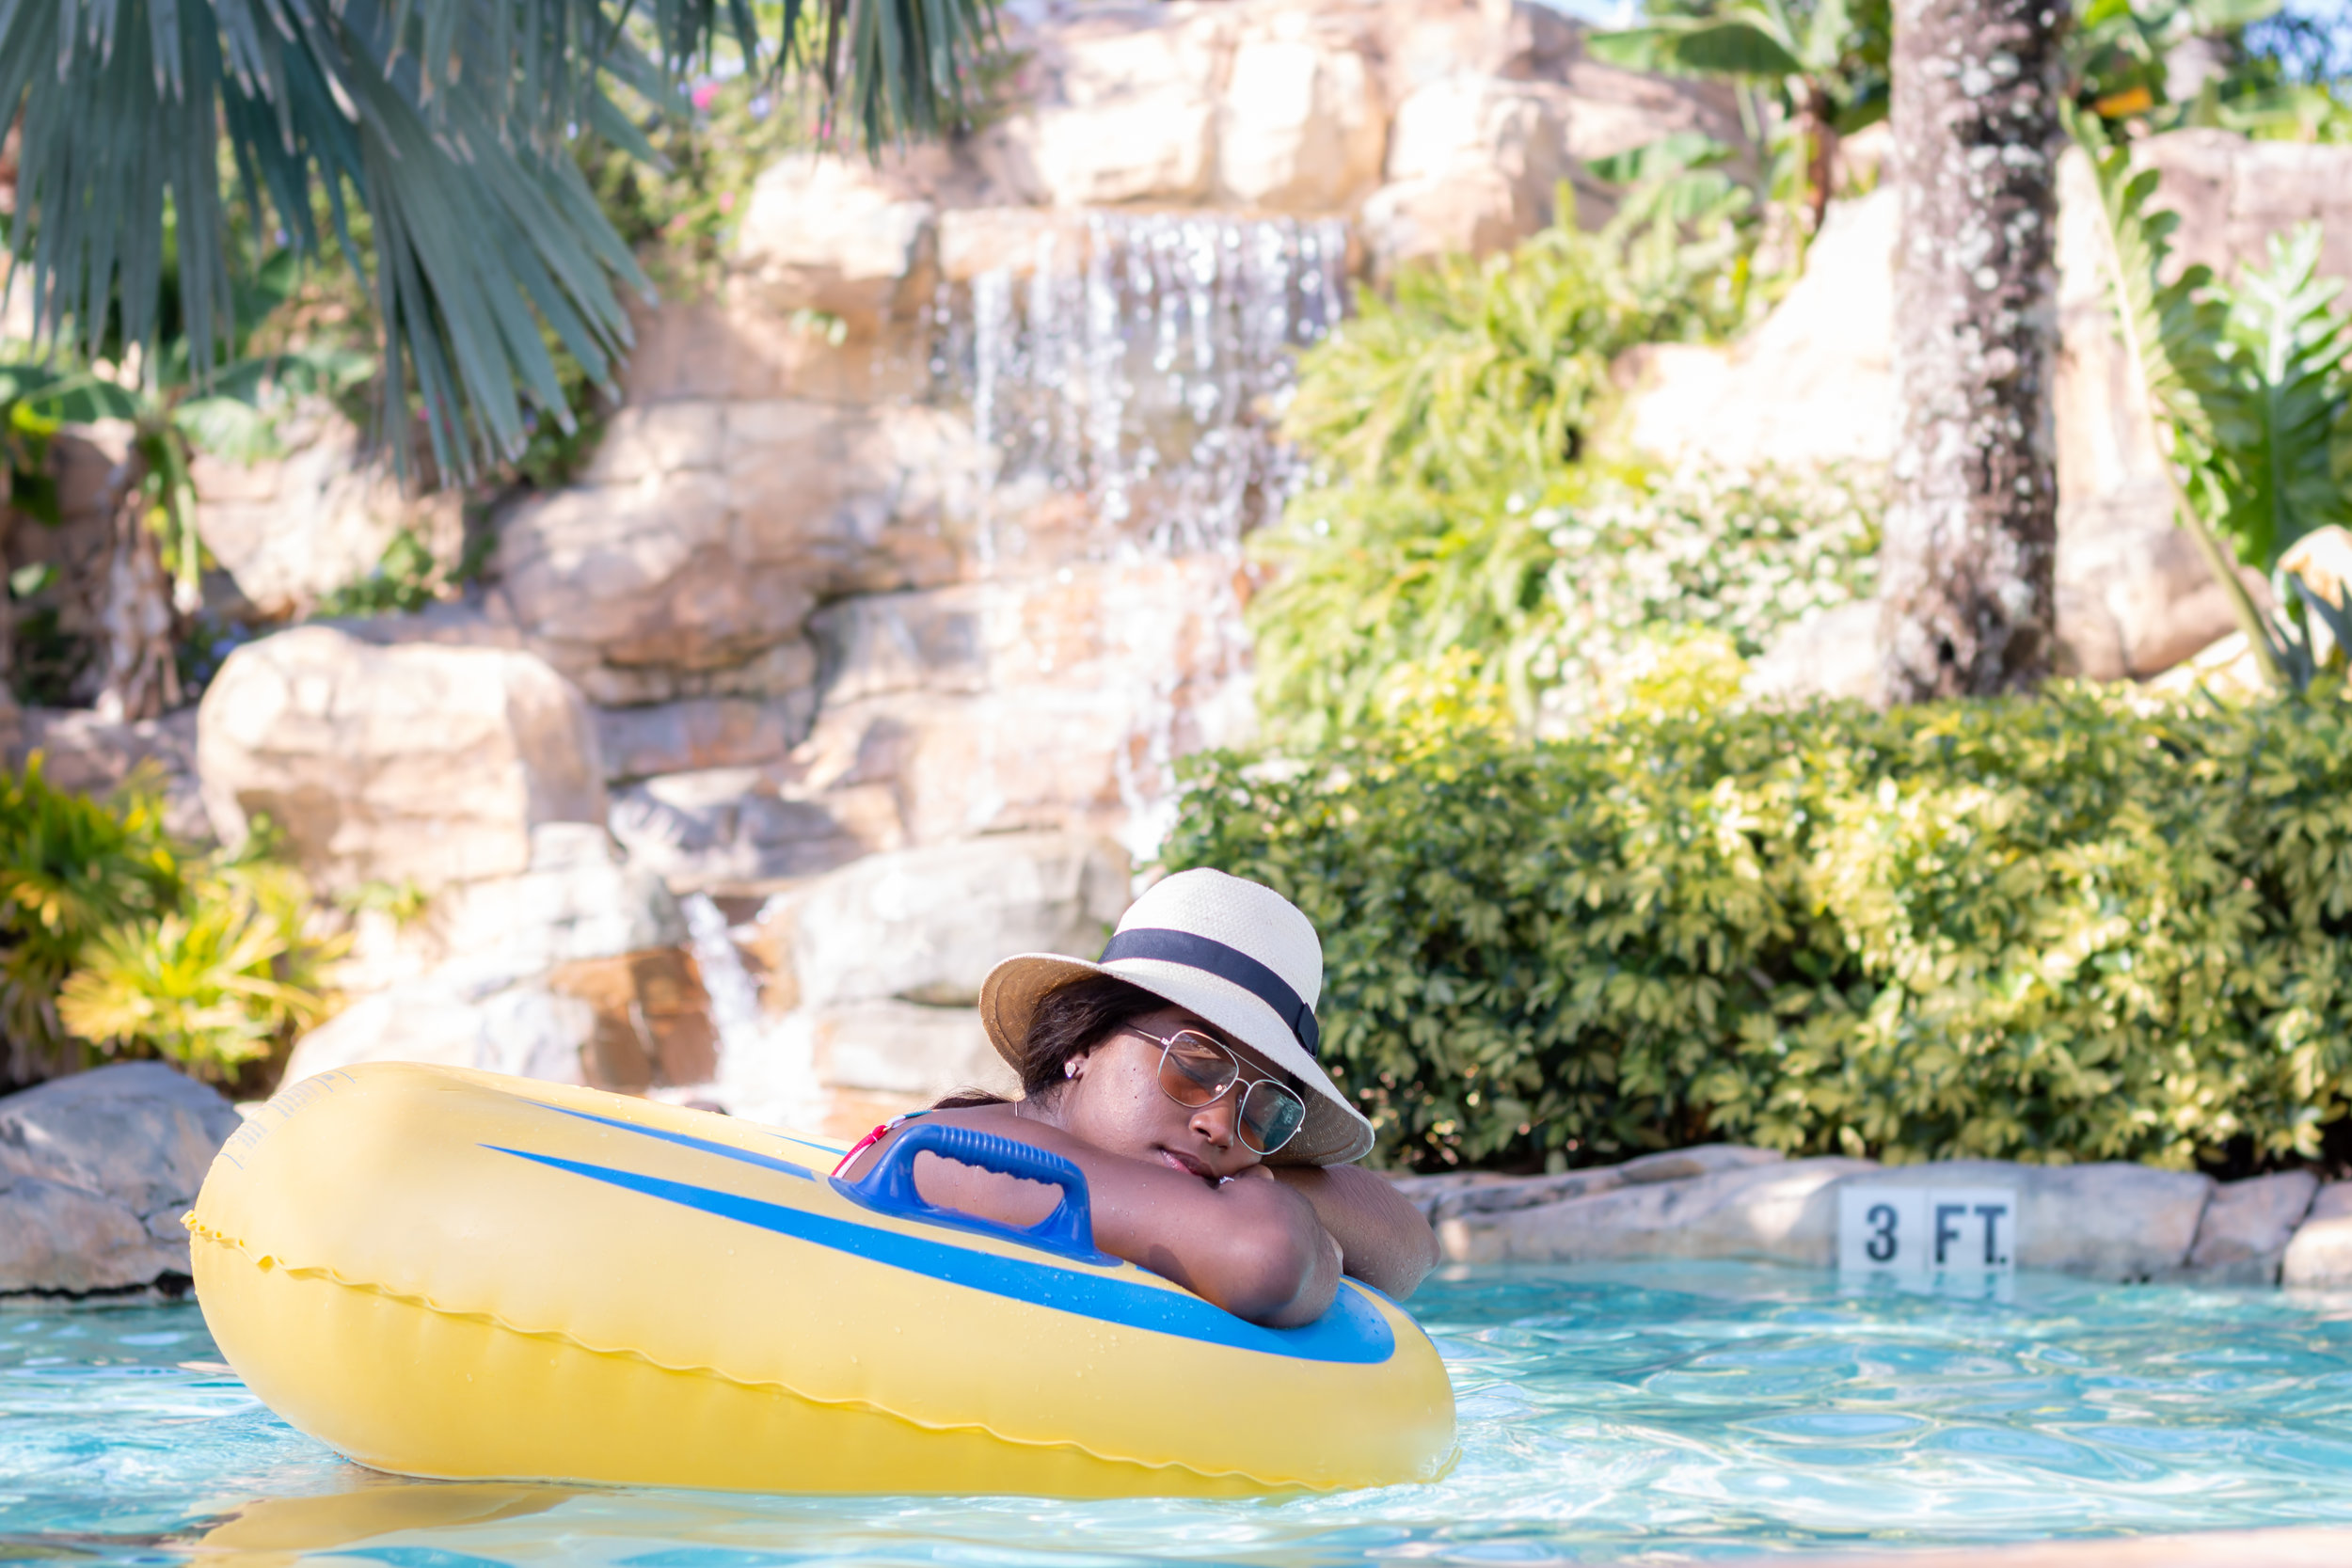 Being lazy on the lazy river